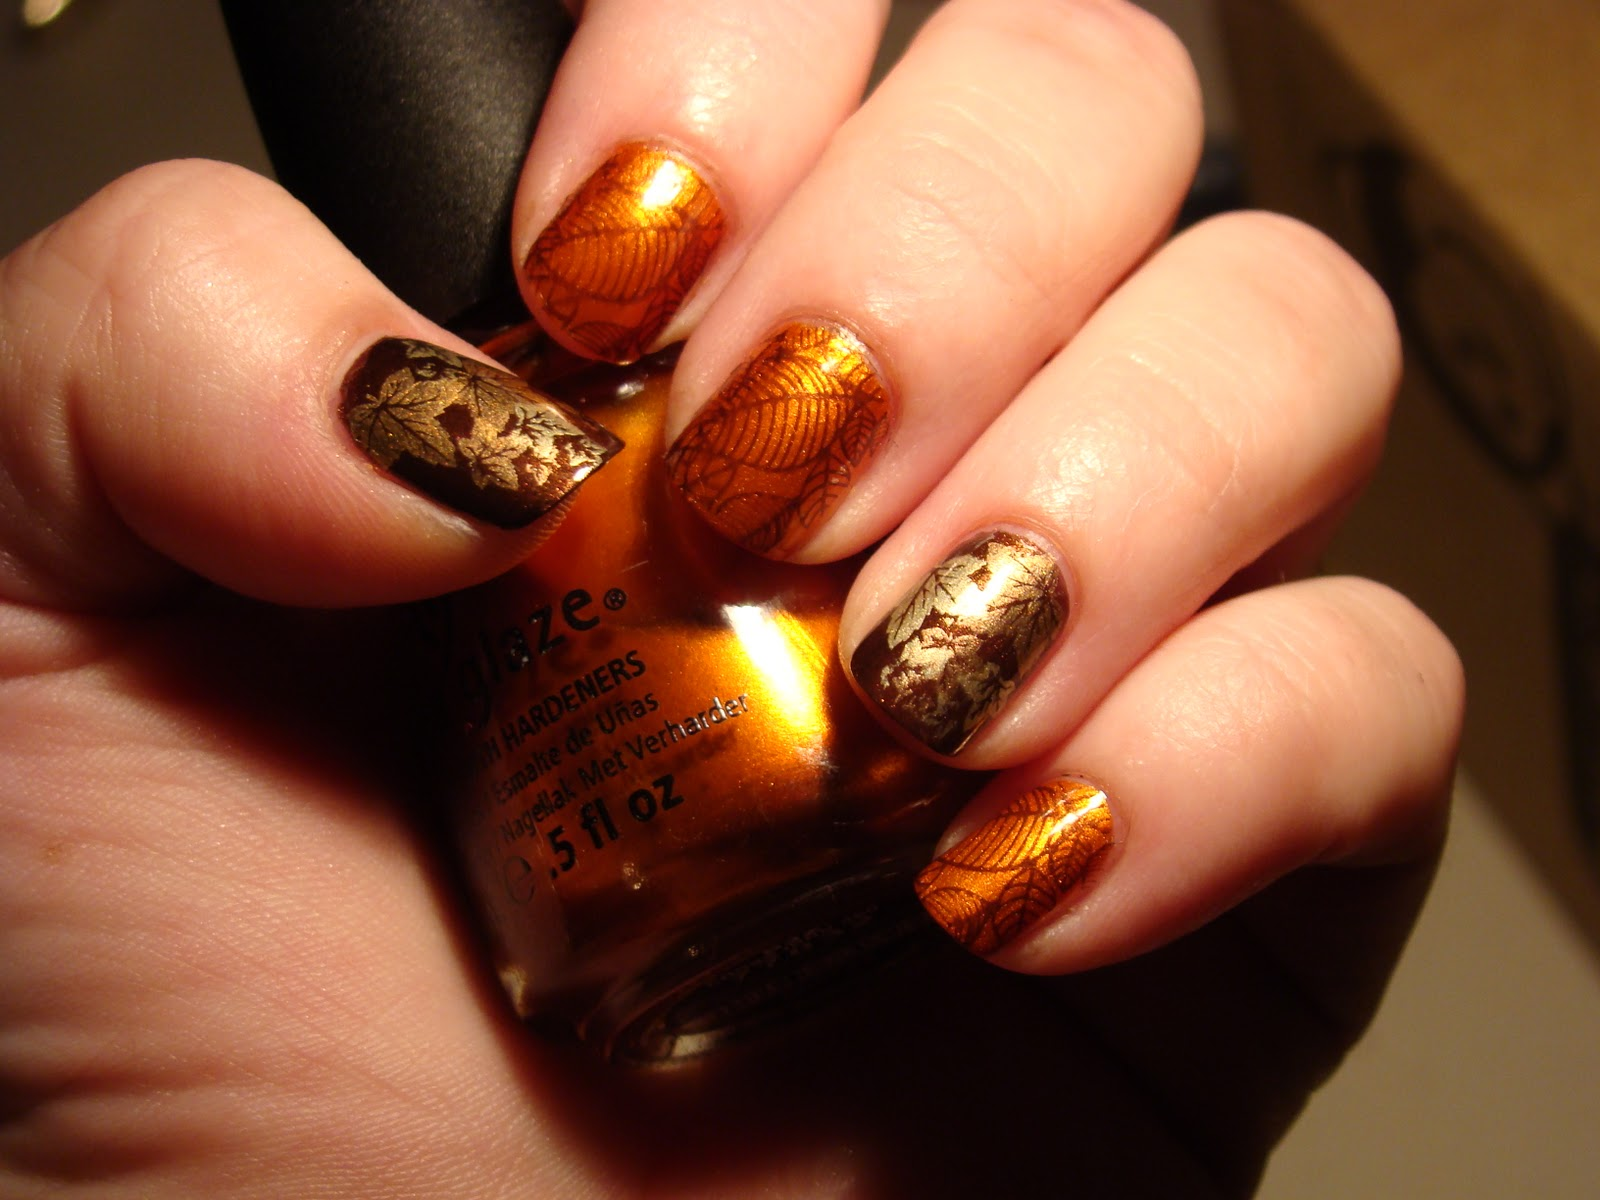 Gorgeous Autumn Inspired Nails - From Mane 'n Tail